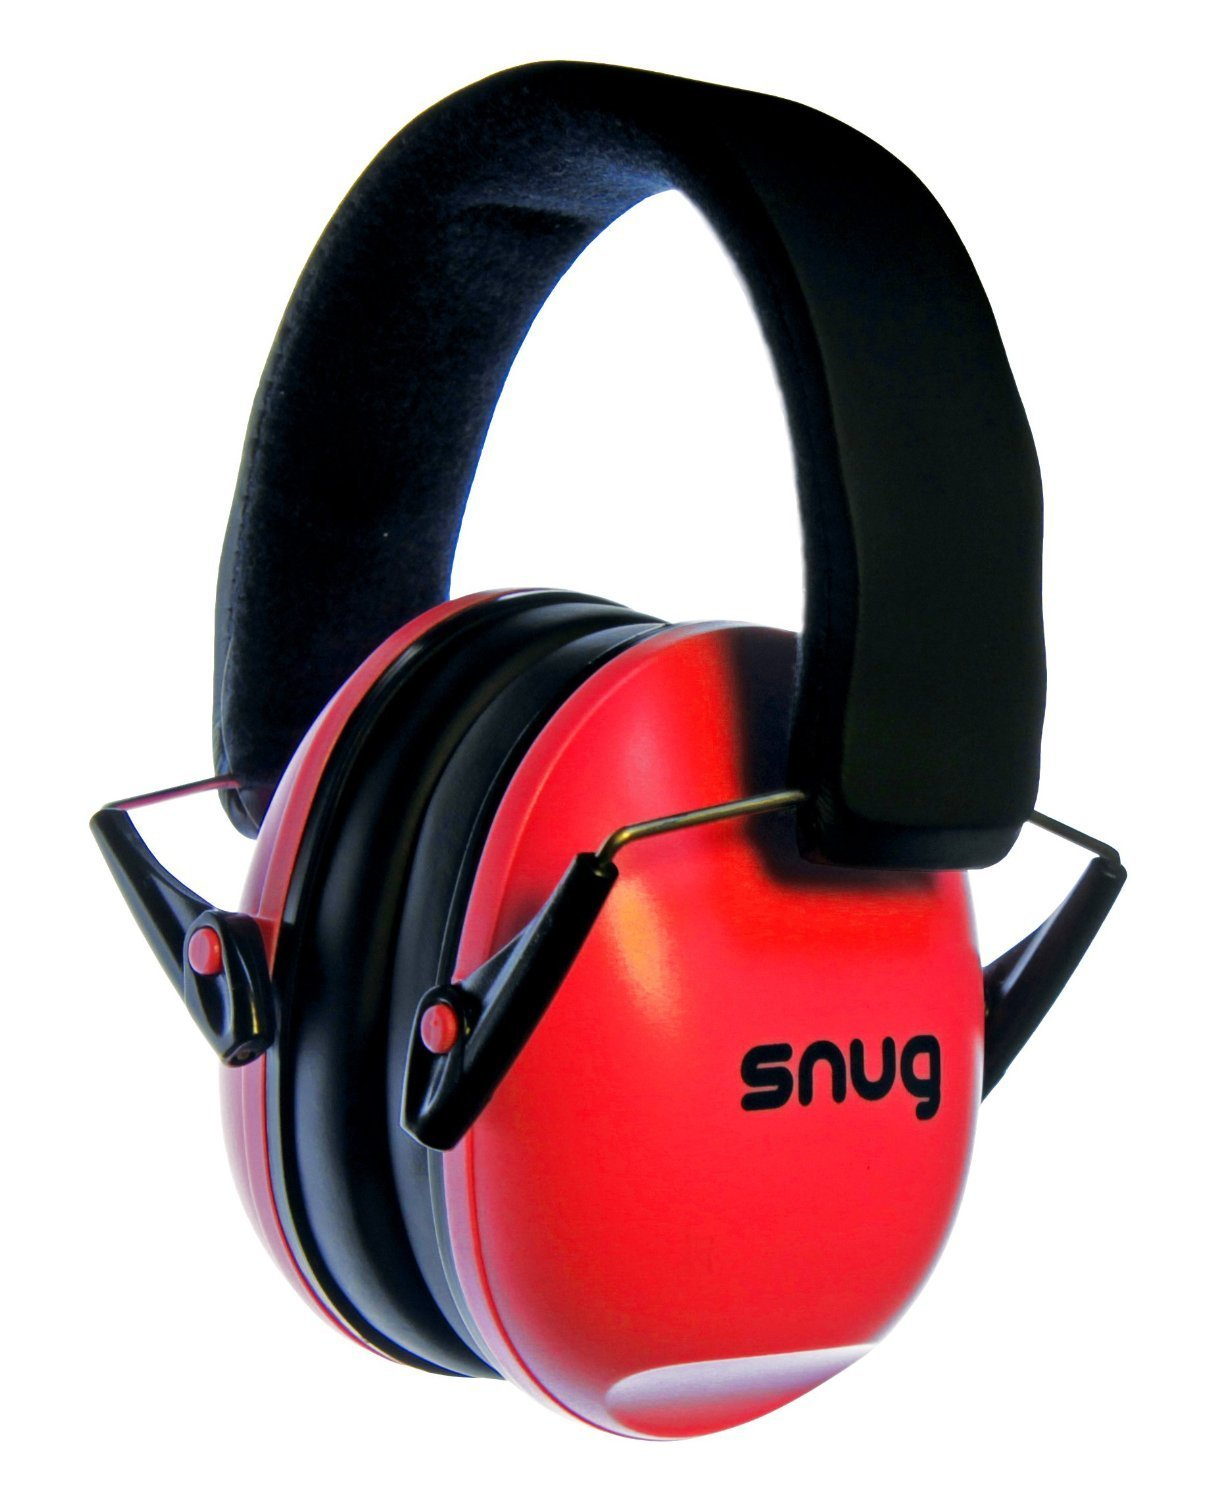 Snug Safe n Sound Kids Ear Defenders/Hearing Protectors – Adjustable Headband Ear Muffs For Children and Adults - 5 YEAR WARRANTY - (Green) SNS